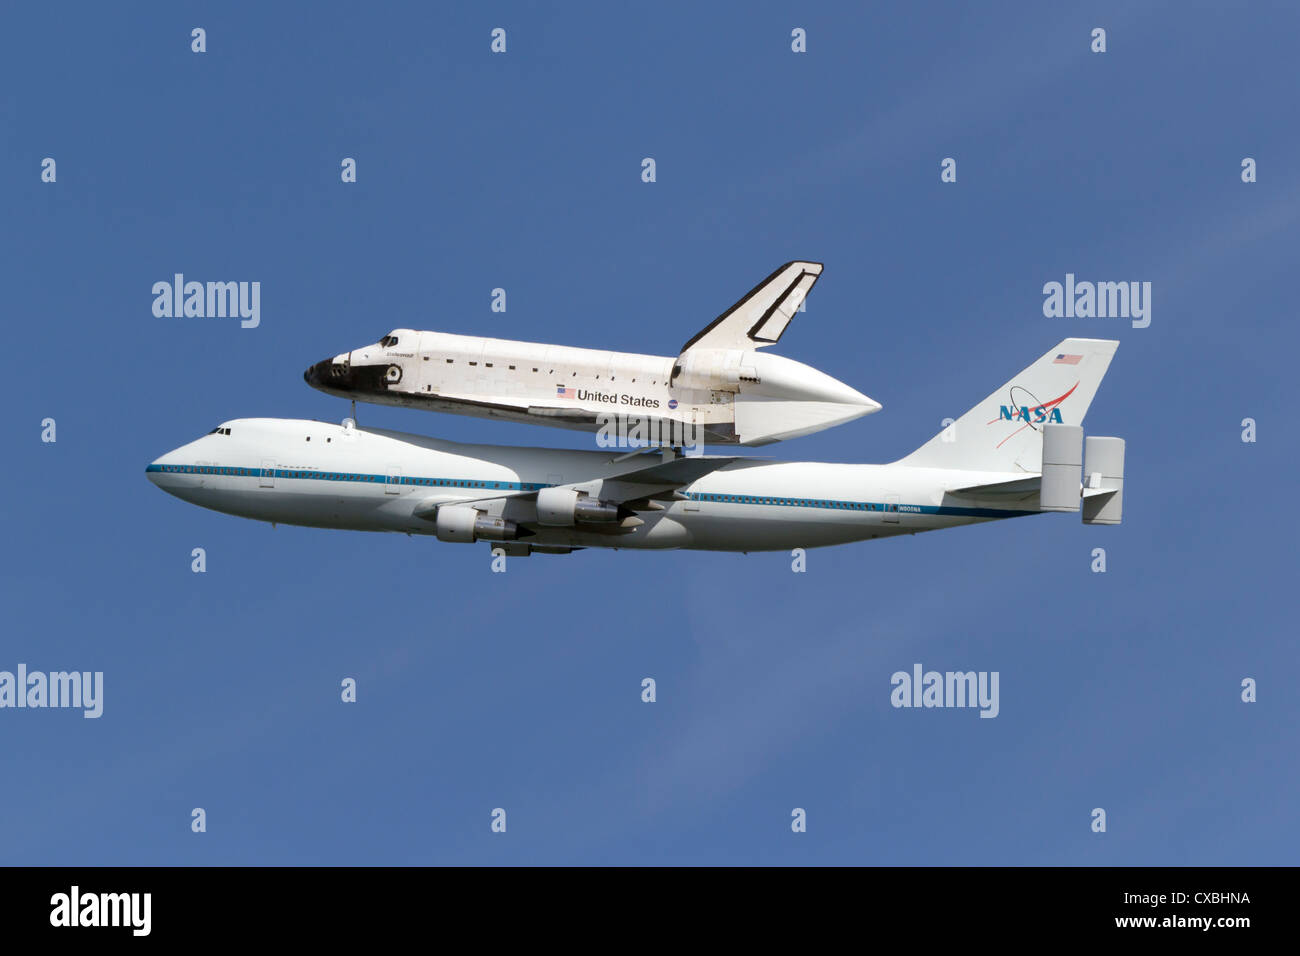 Space Shuttle Endeavour rides atop its 747 escort during the spacecrafts final flight to Southern California. - Stock Image